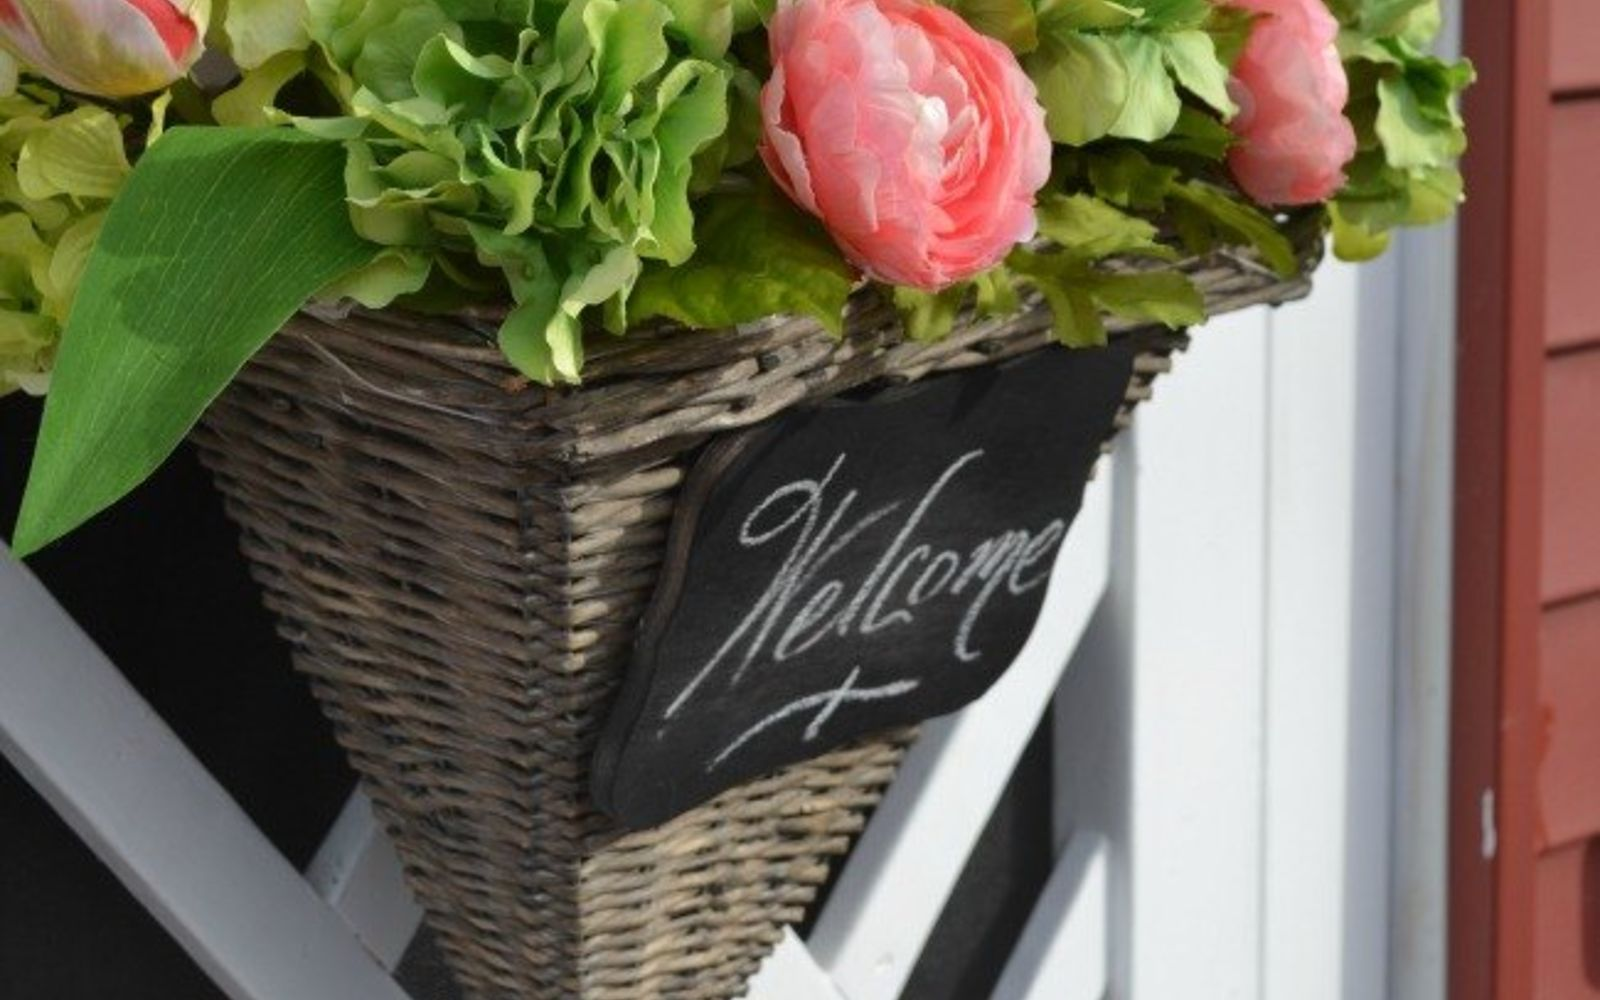 s 31 gorgeous spring wreaths that will make your neighbors smile, crafts, seasonal holiday decor, wreaths, Craft a huge basket full of blooms